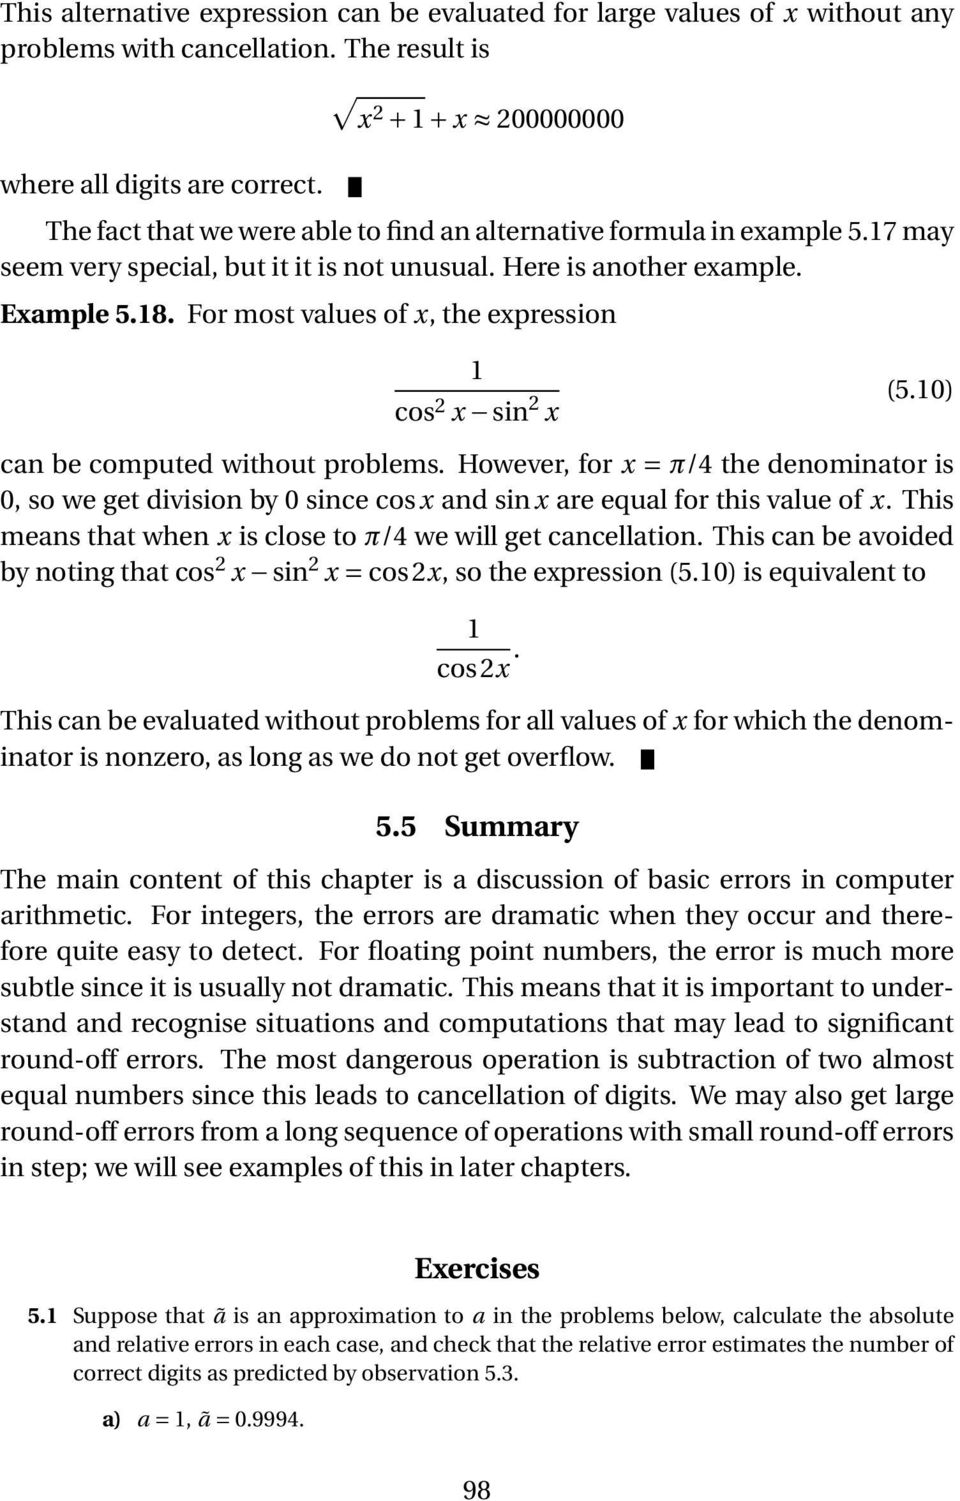 For most values of x, the expression 1 cos 2 x sin 2 x (5.10) can be computed without problems.